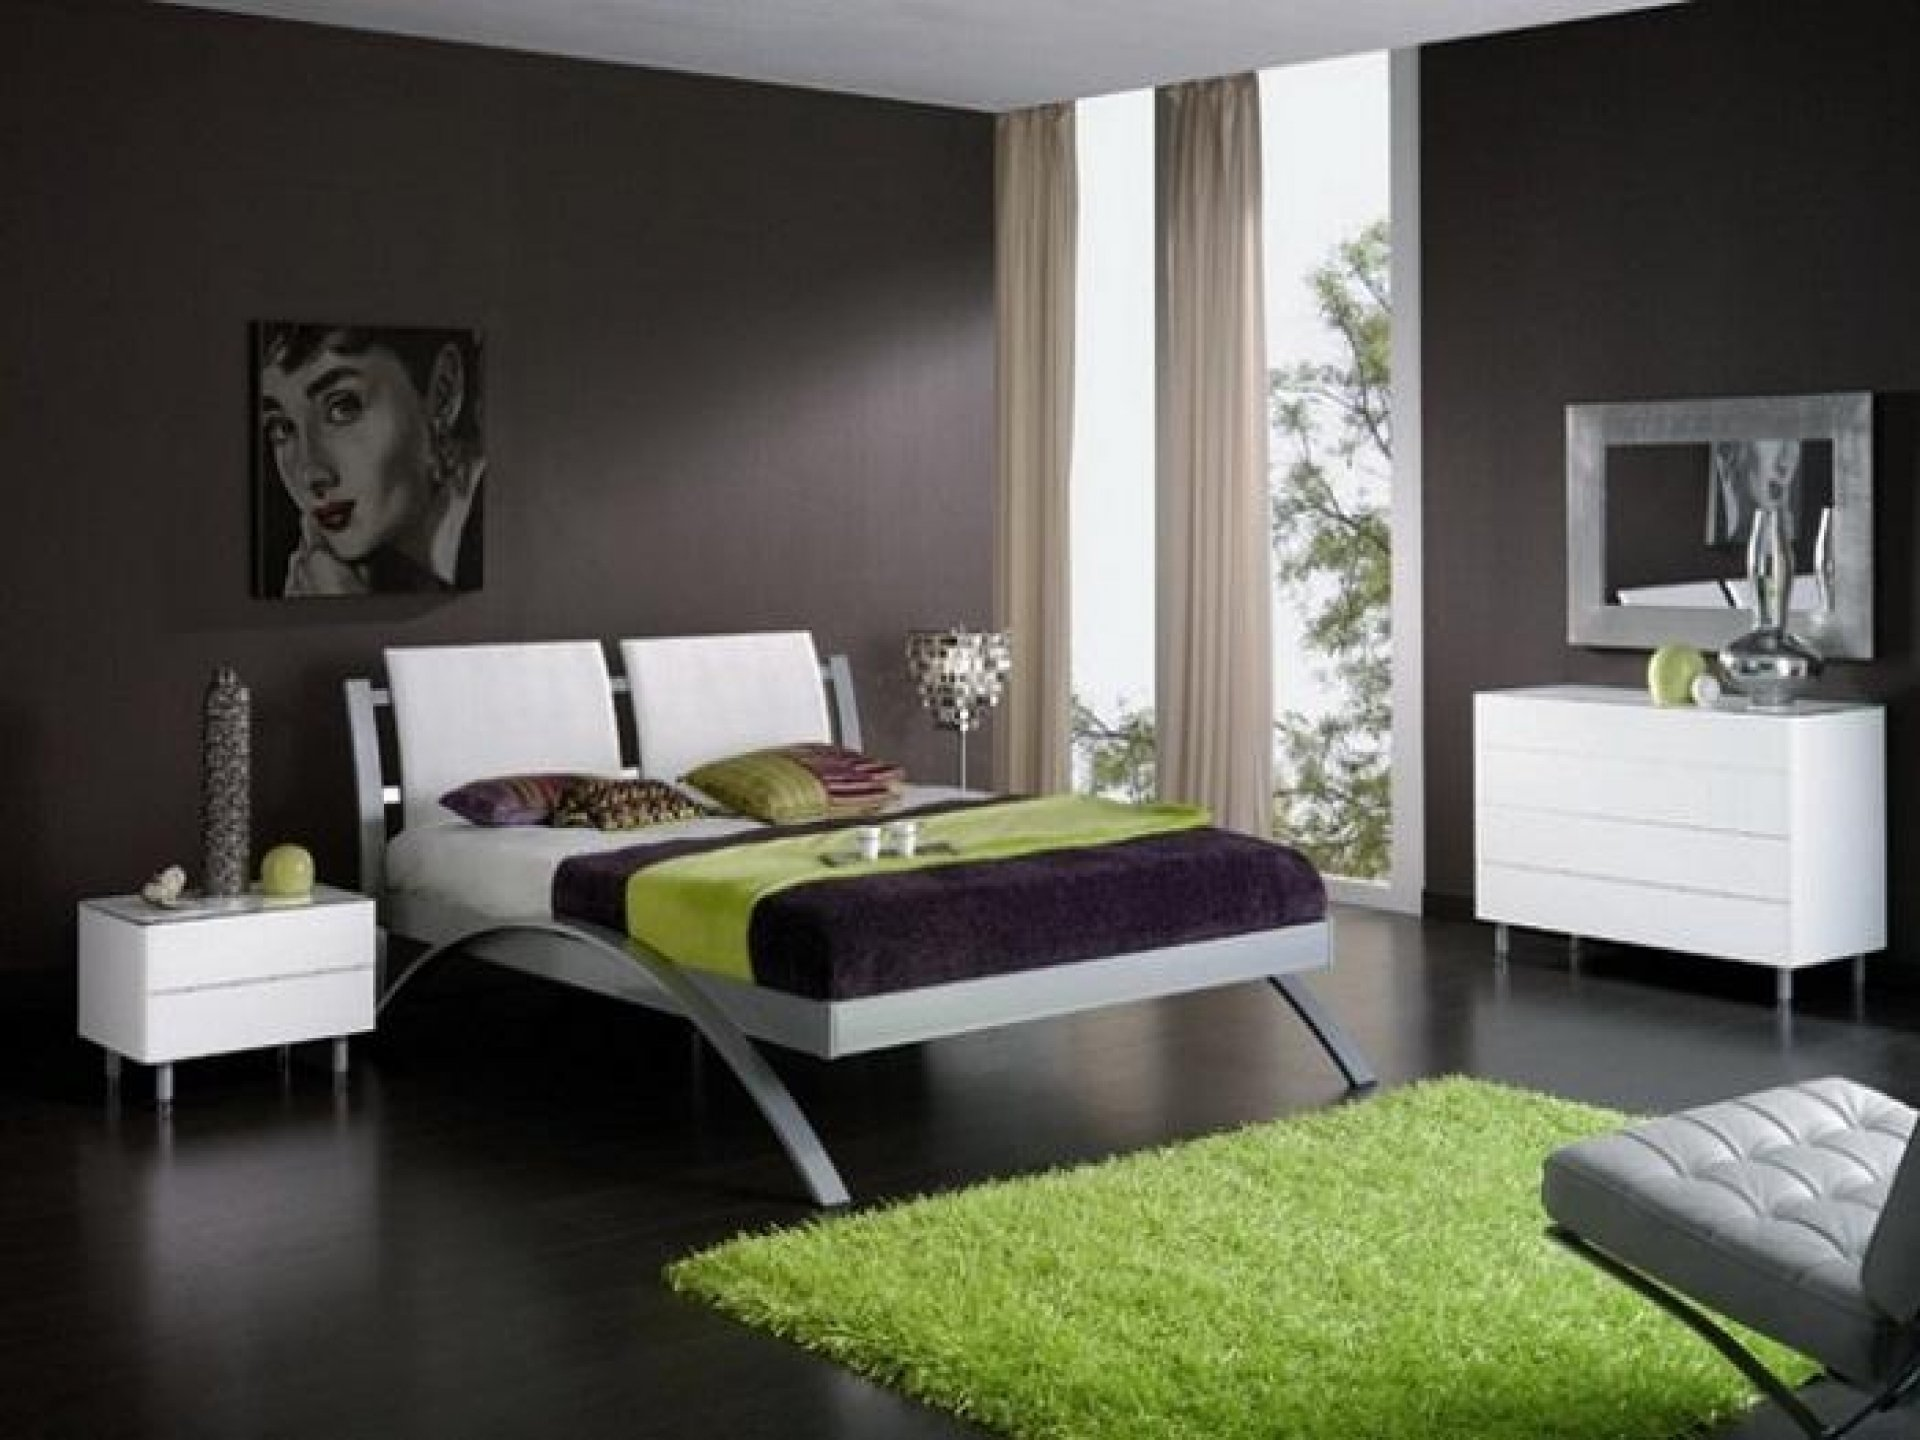 10 Spectacular Cool Room Ideas For Guys amazing of interesting cool room designs for guys basebal and guys 2020